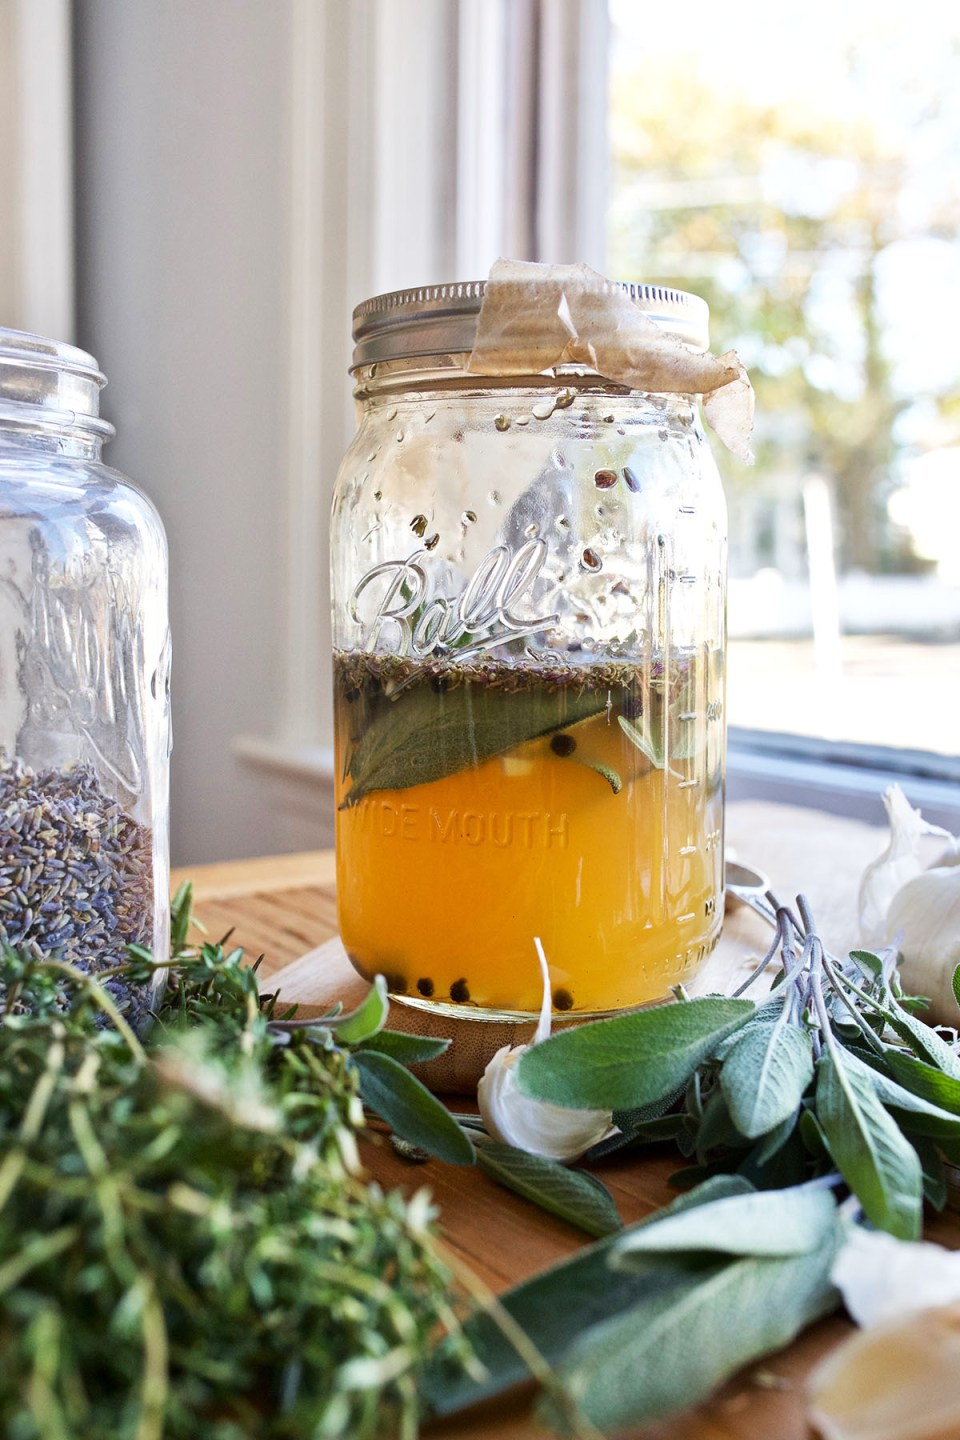 How to Make and Use the Legendary Four Thieves Vinegar Blend | Herbal Academy | Ever heard of the Four Thieves Vinegar blend? Come learn the folklore surrounding this blend, how it's used to support wellness, and how to make it.